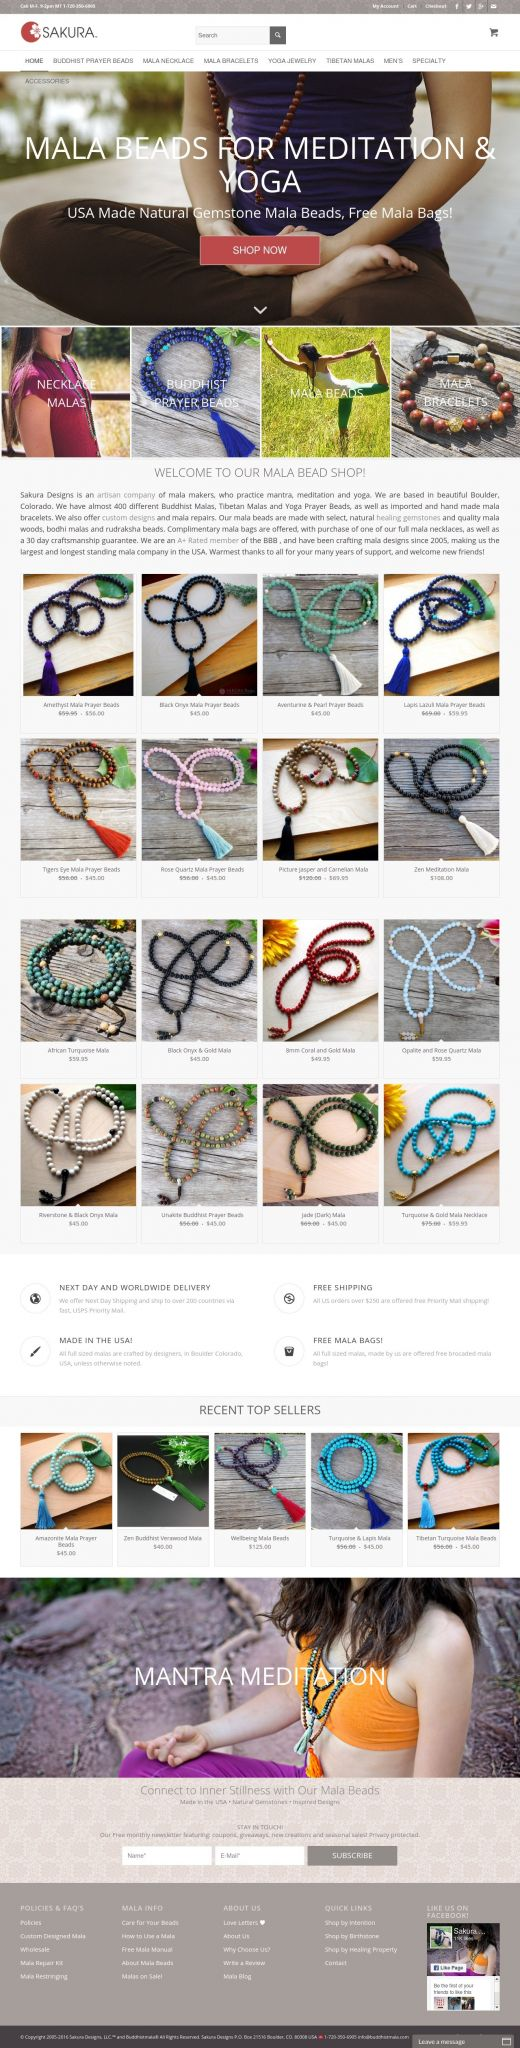 new website for mala beads